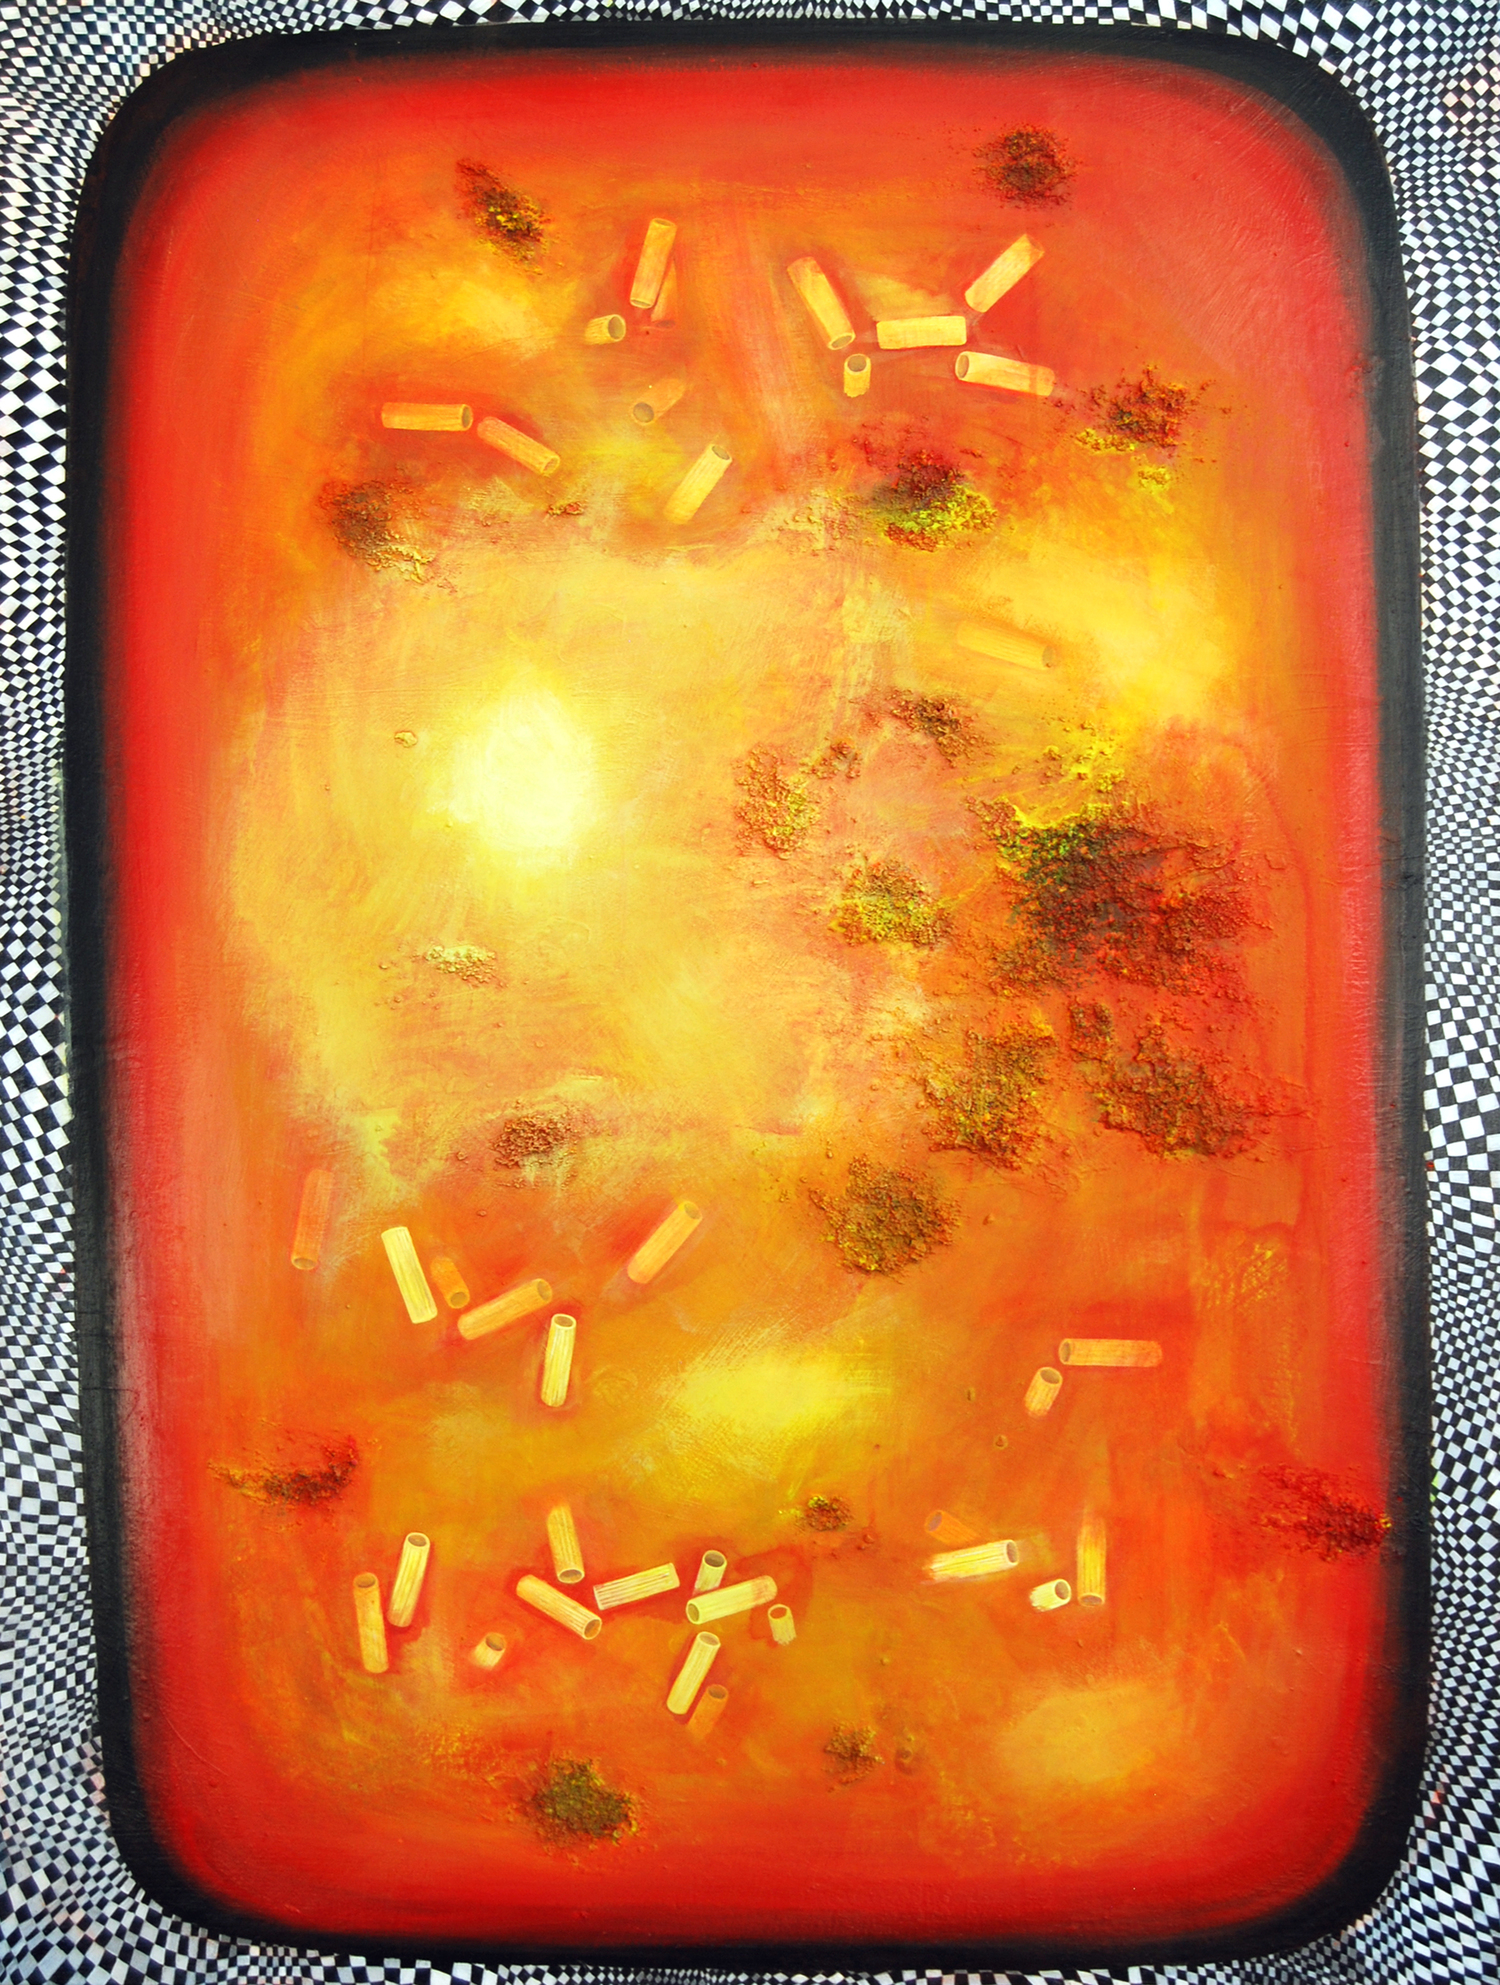 Rigatoni Casserole , 2015, acrylic on canvas, 40 x 30 inches, acrylic and pumice on canvas. Jennifer Coates.